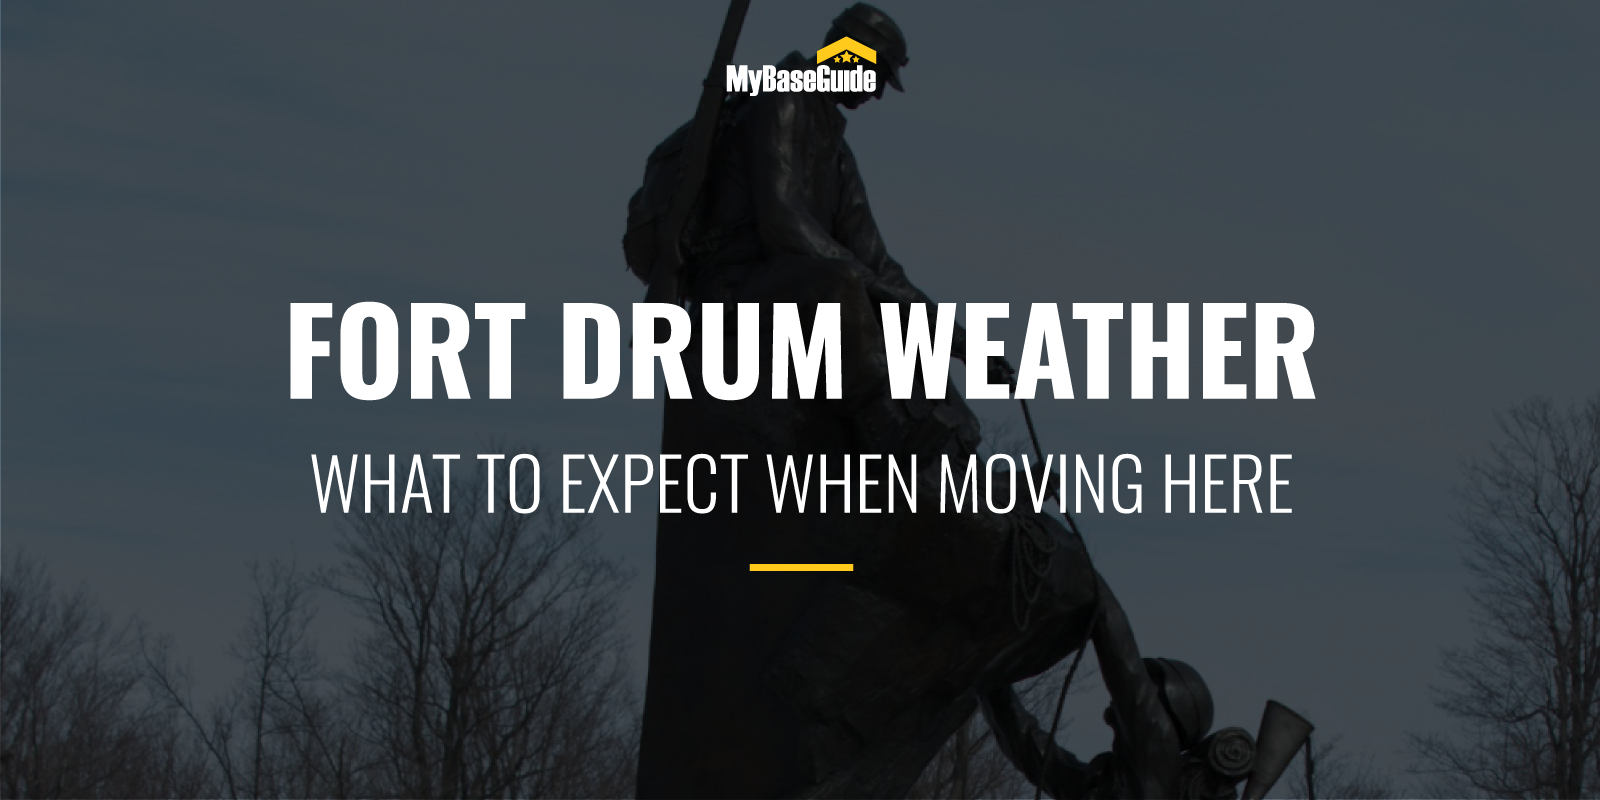 Fort Drum Weather: What To Expect When Moving Here